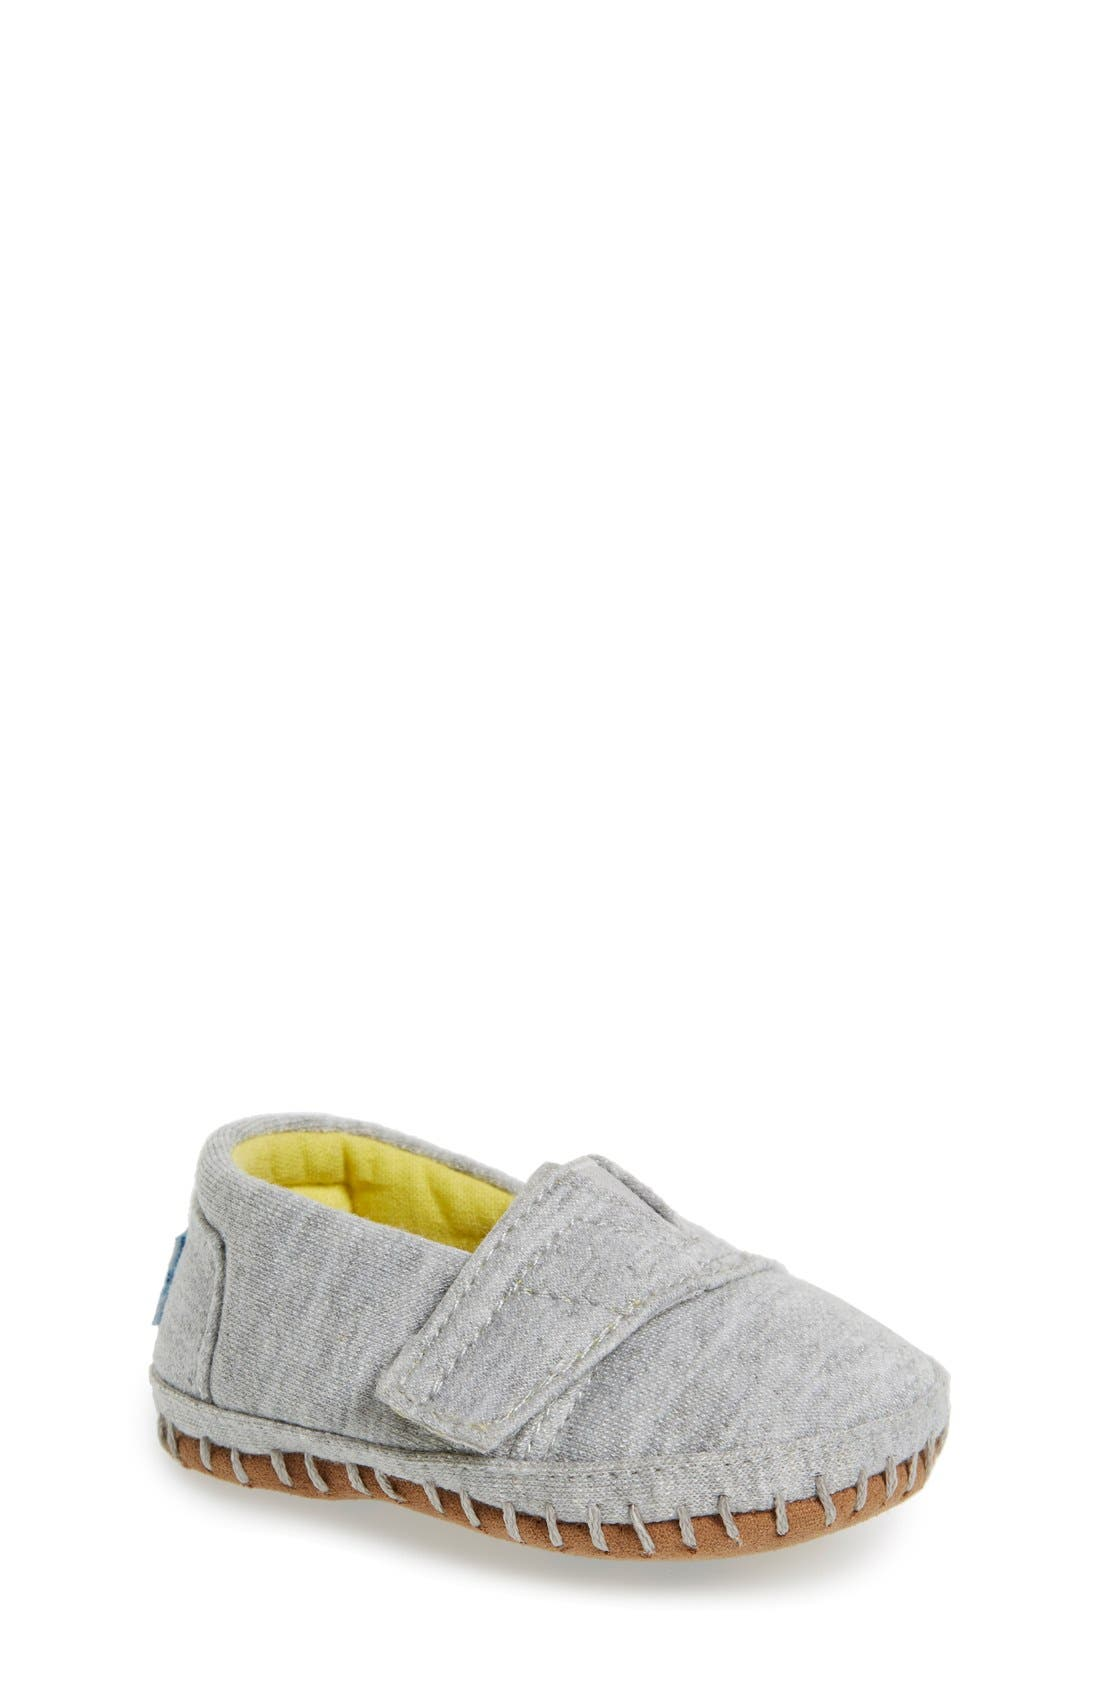 Alpargata Chambray Crib Shoe,                         Main,                         color, GREY